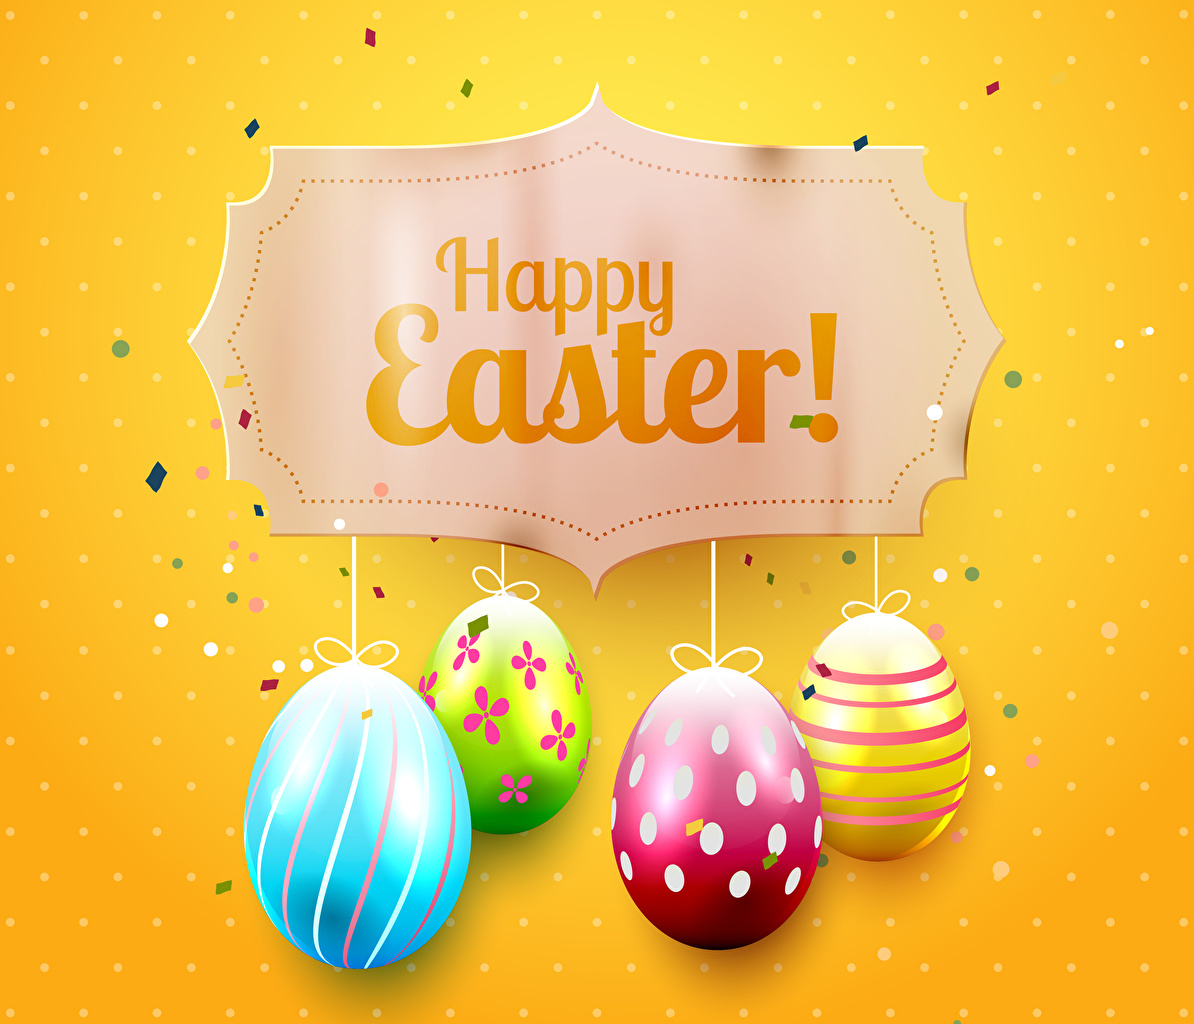 Photo Easter English egg Design Colored background Eggs